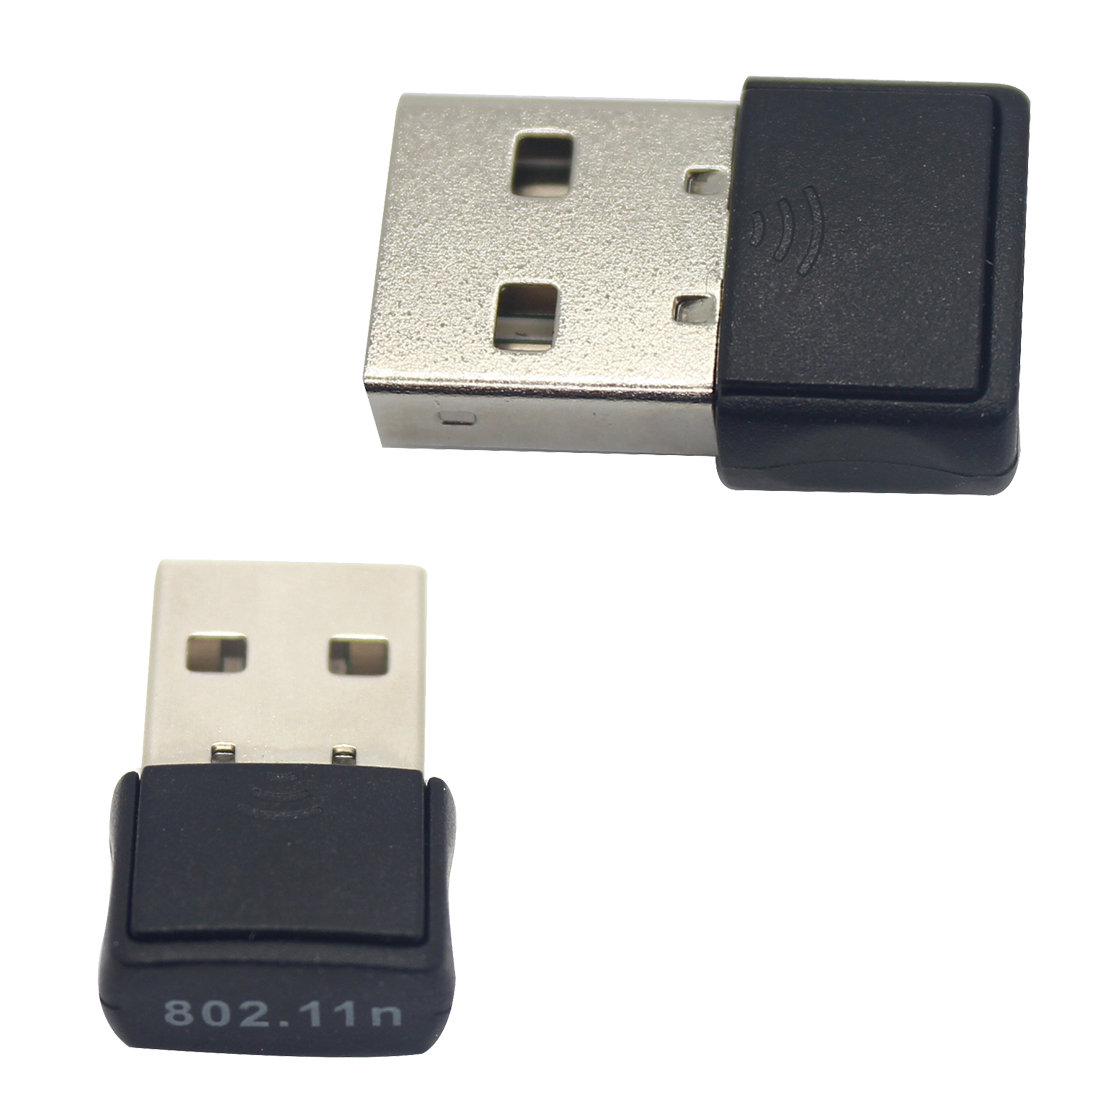 Etmakit Mini USB 2.0 Draadloze WiFi-adapter 150 Mbps USB-adapter WiFi 802.11n draadloze netwerkkaart Dongle Raspberry Pi B